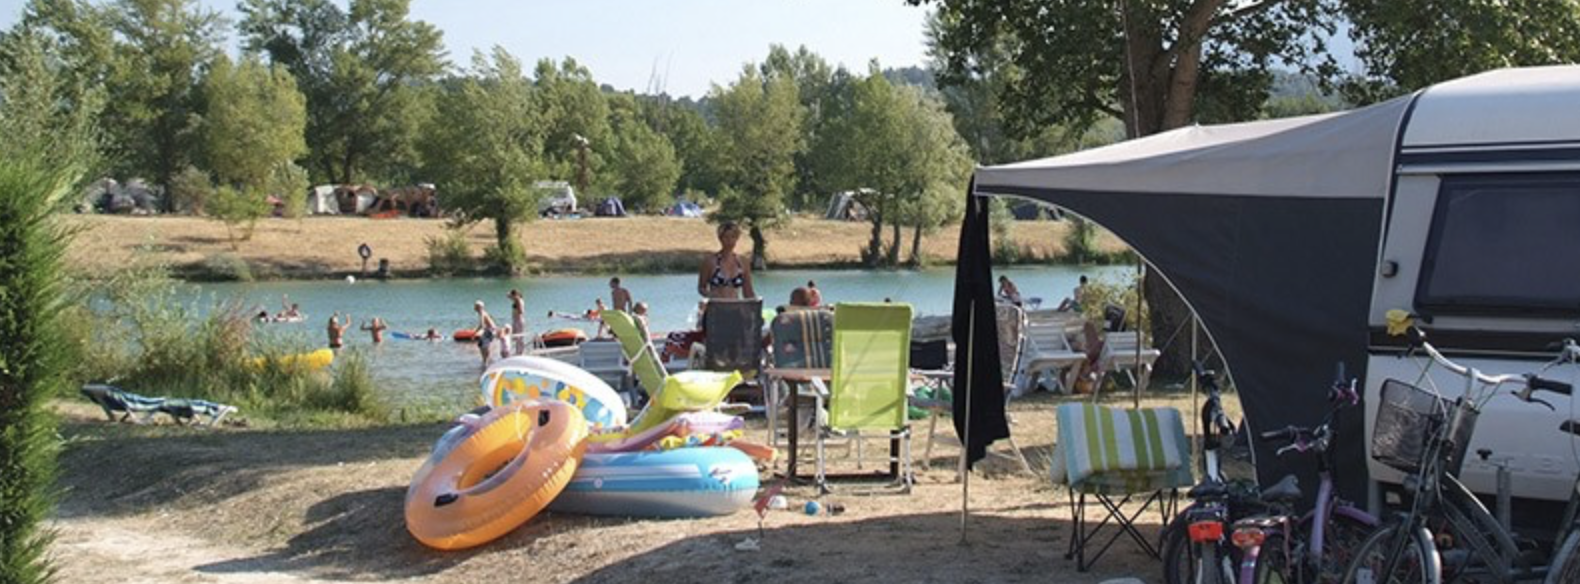 camping bords de lac drome